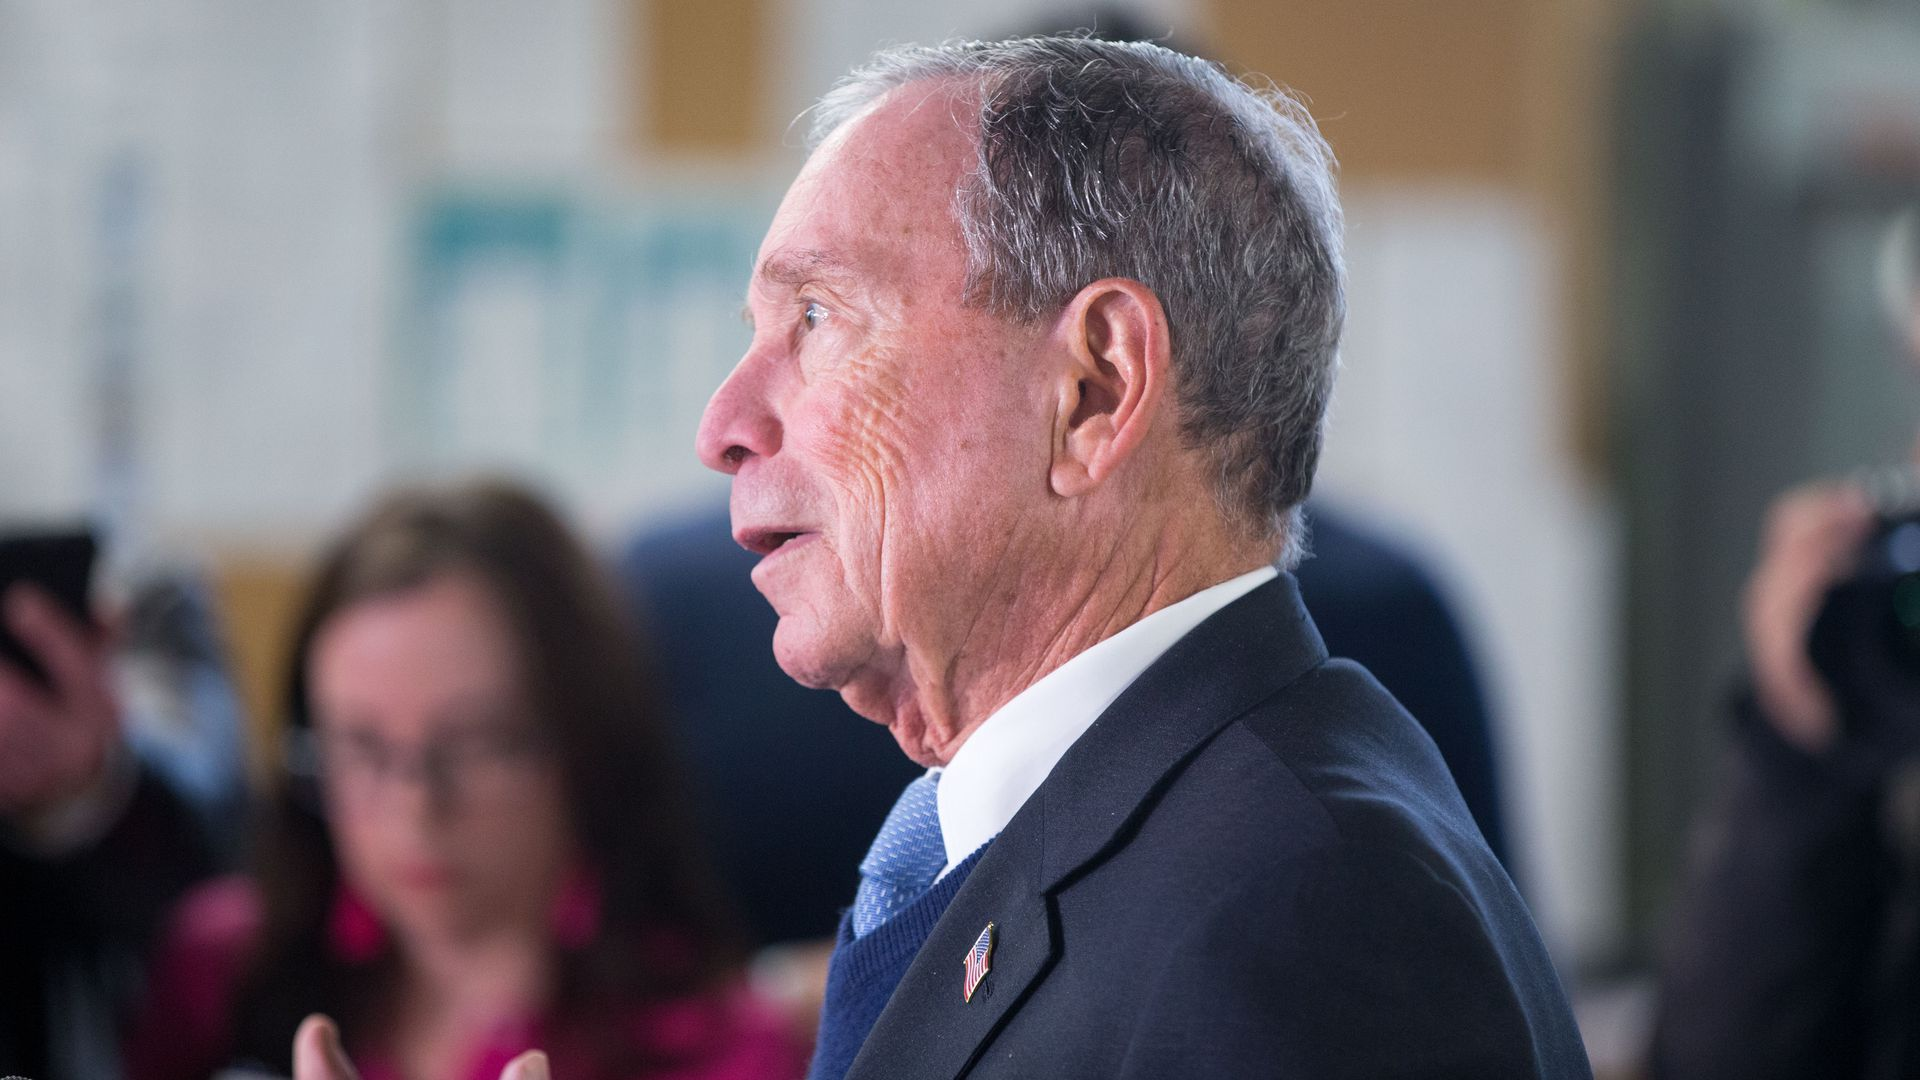 This image a side profile of Bloomberg talking and wearing a suit.